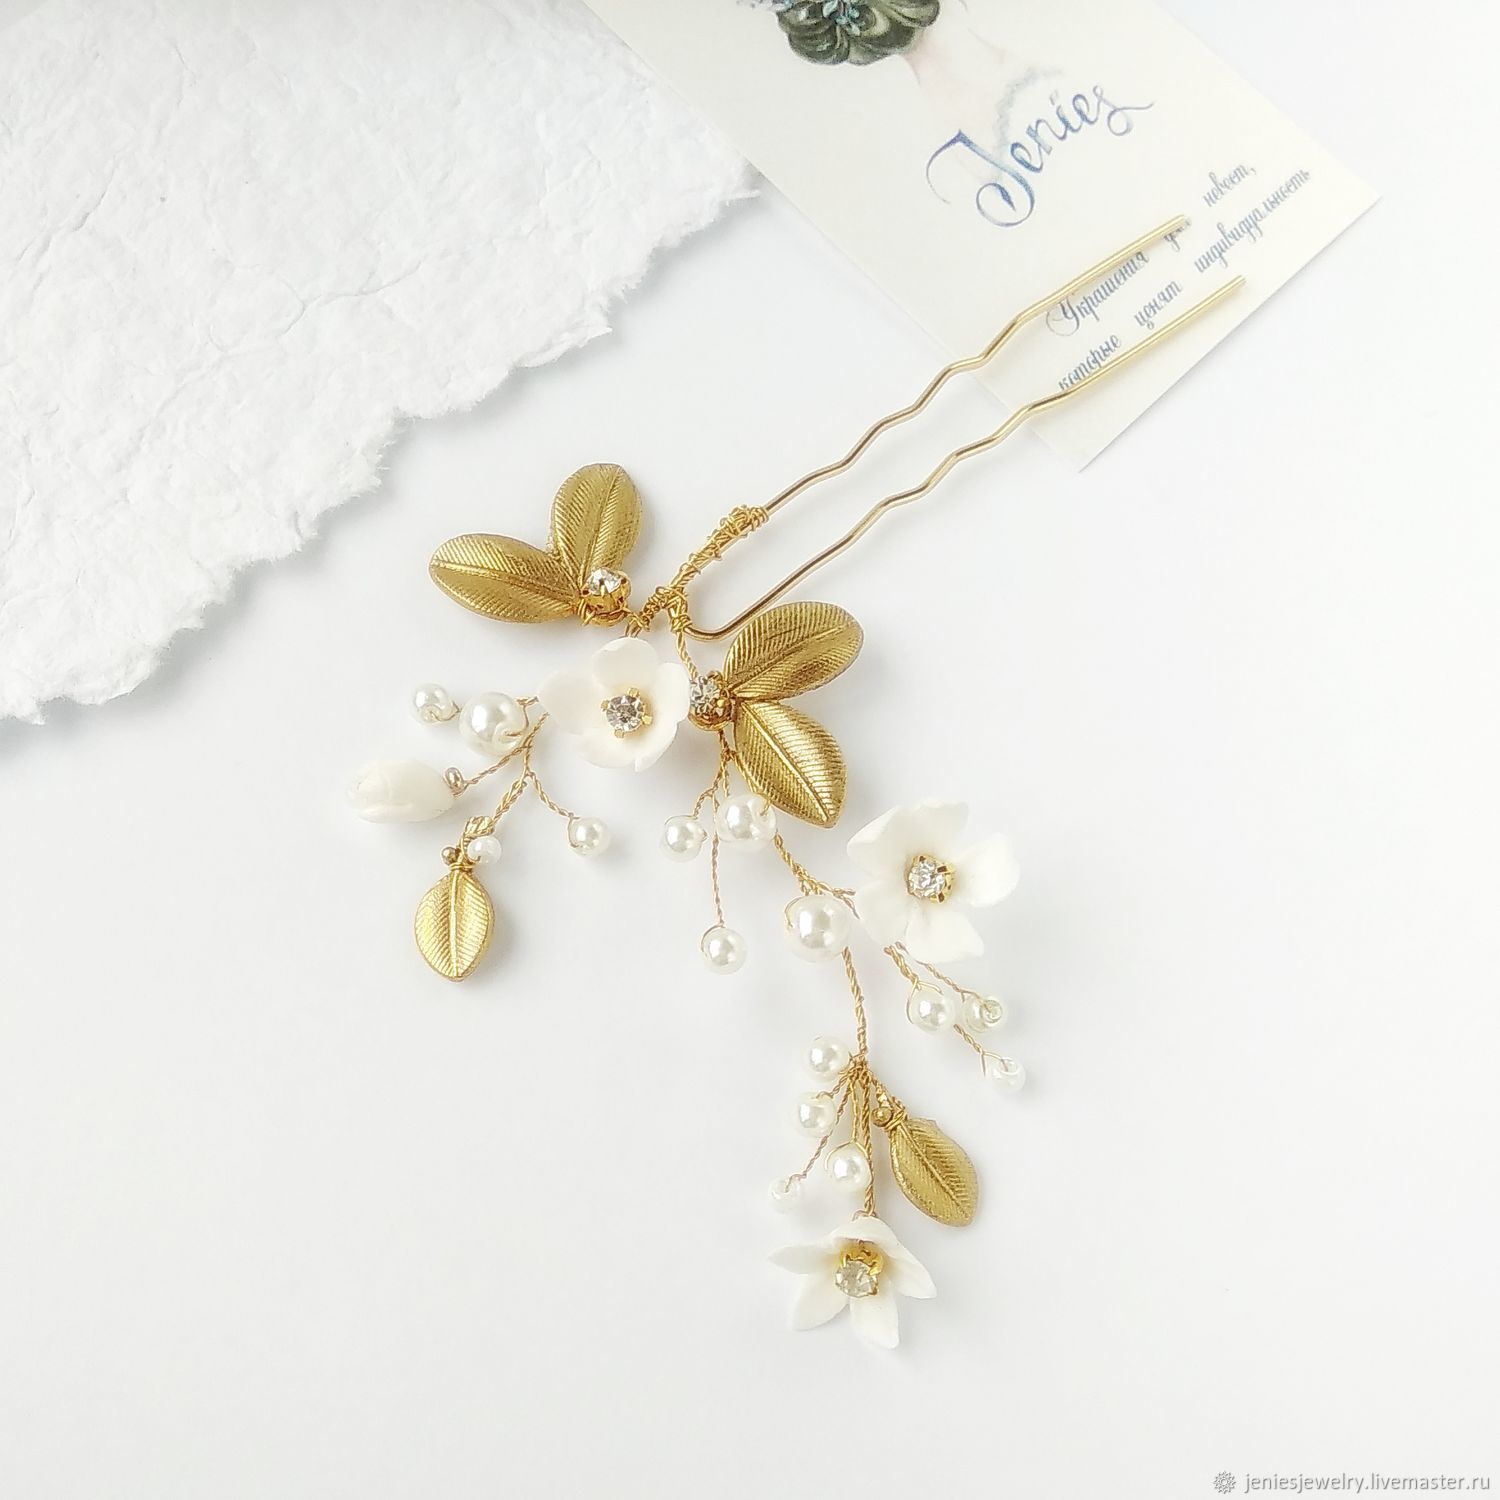 Gold Floral Leaf Hair Pins Small White Flower Hair Accessories Kupit Na Yarmarke Masterov Lj96icom Ukrasheniya V Prichesku Tomsk